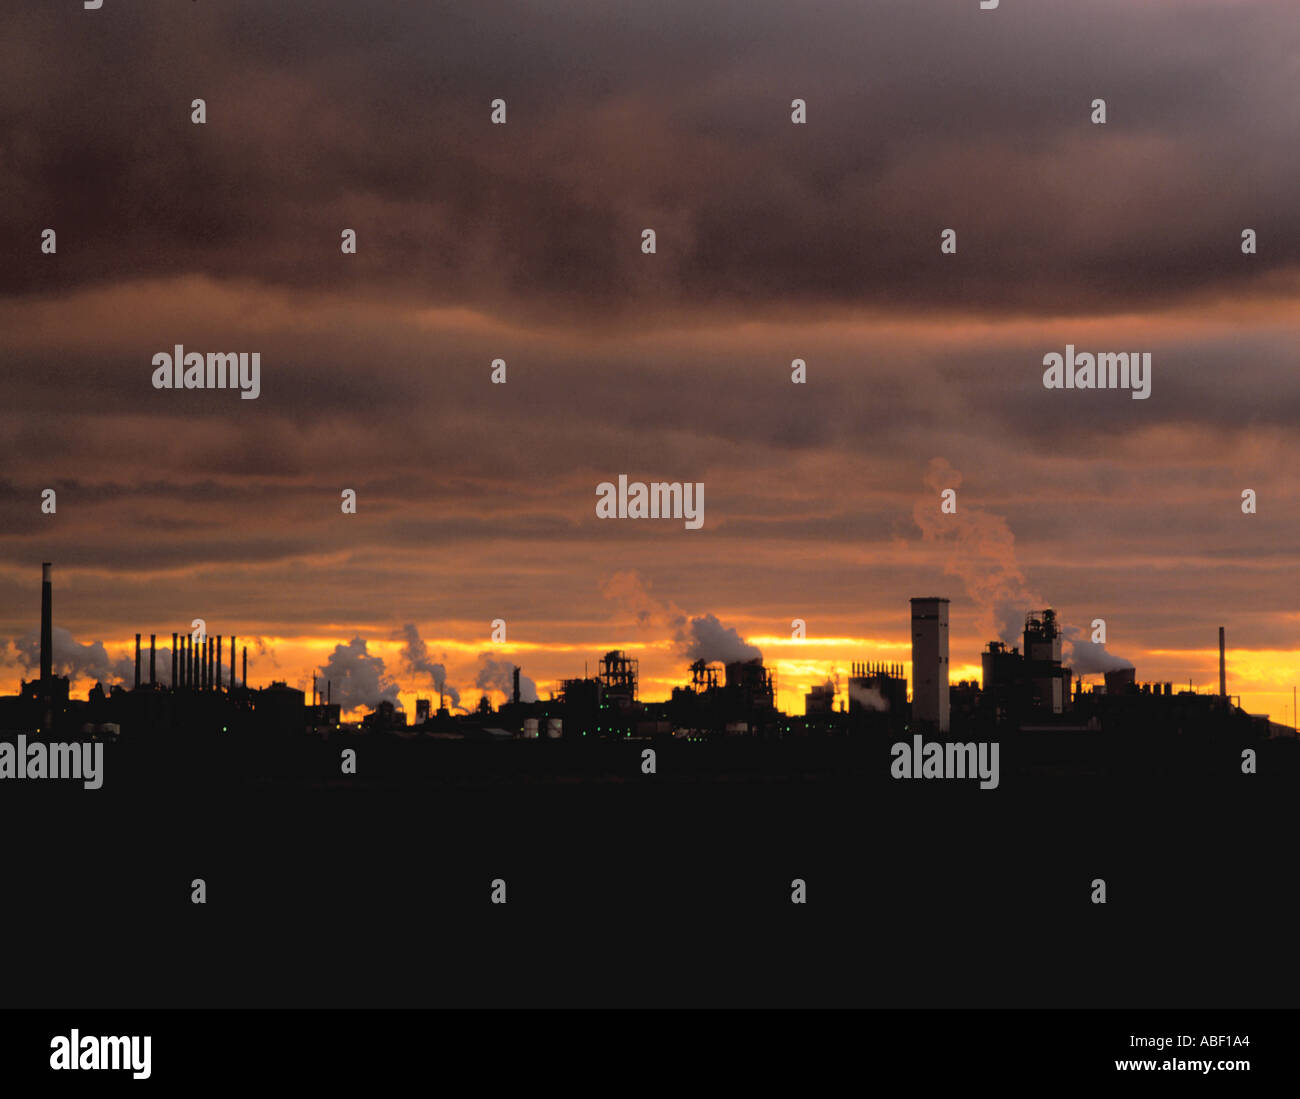 Panorama of a chemical works at sunset; Chemical complex at Wilton, Teesside, Cleveland, England, UK. - Stock Image